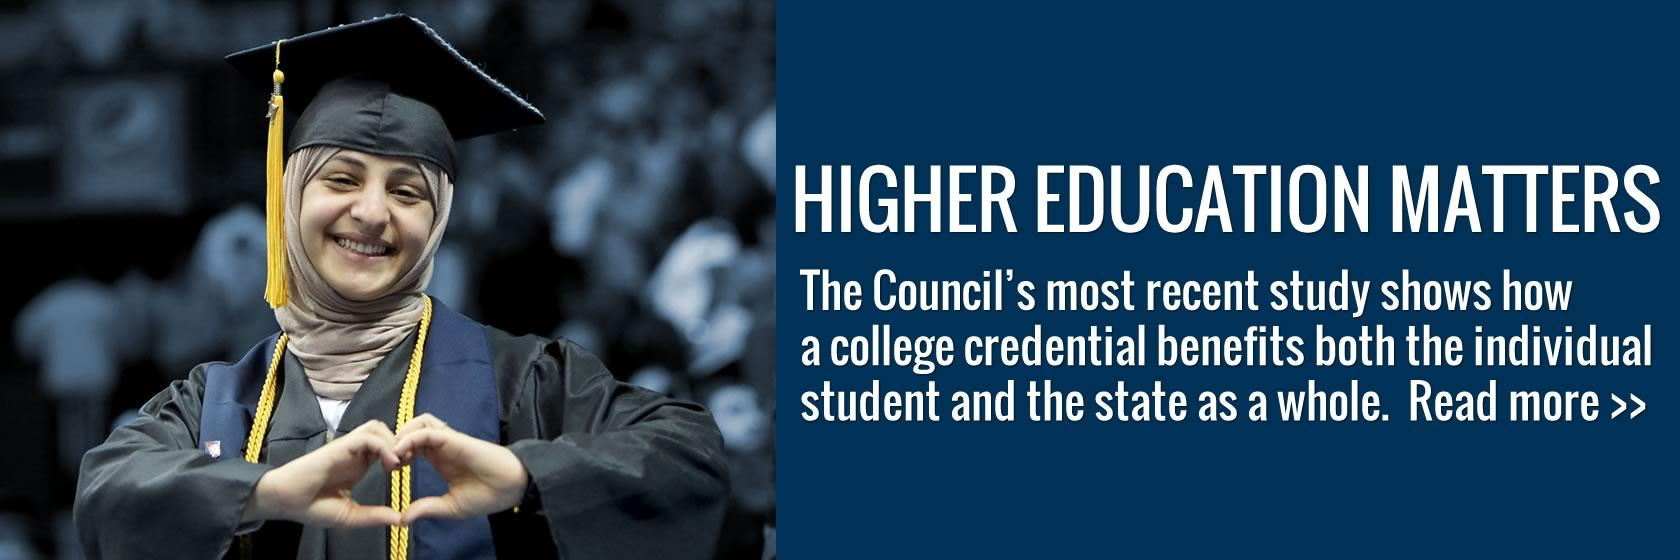 Learn how obtaining a postsecondary credential benefits both citizen and state.